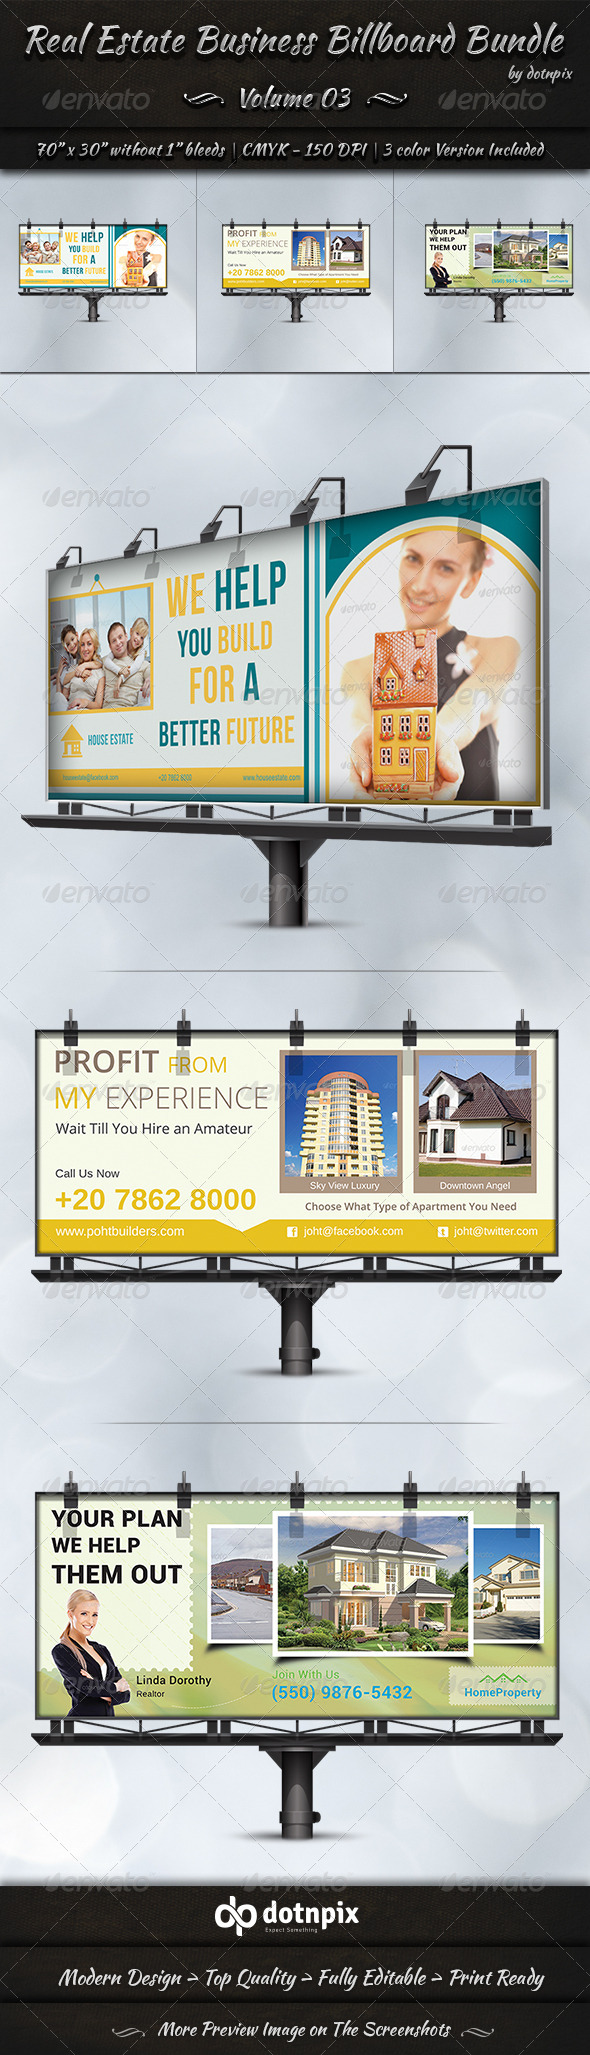 GraphicRiver Real Estate Business Billboard Bundle Volume 3 7359908